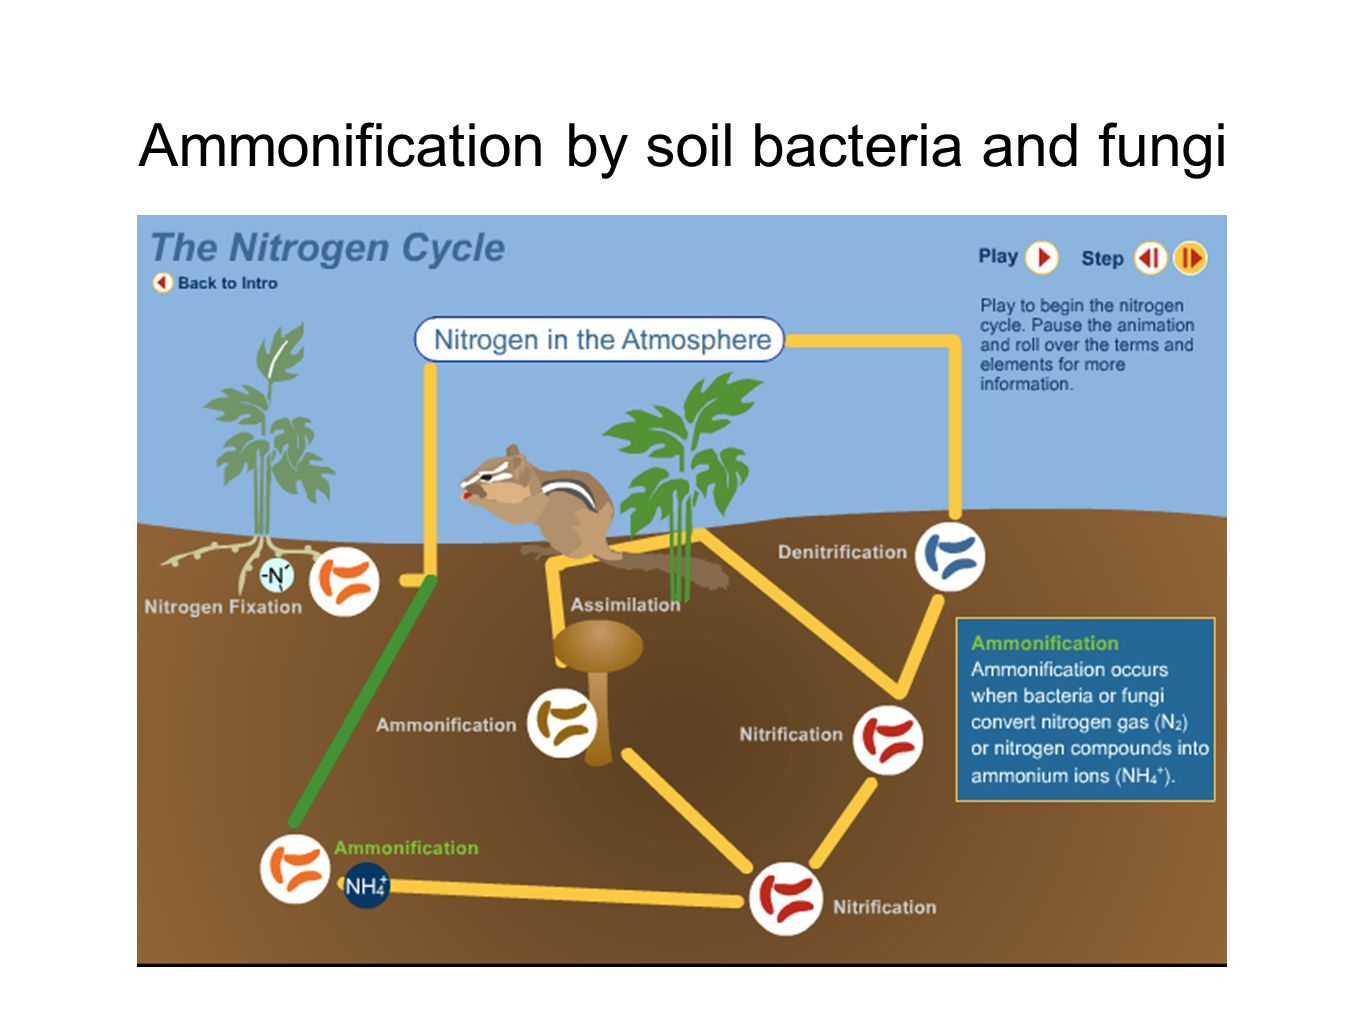 Ammonification by soil bacteria and fungi